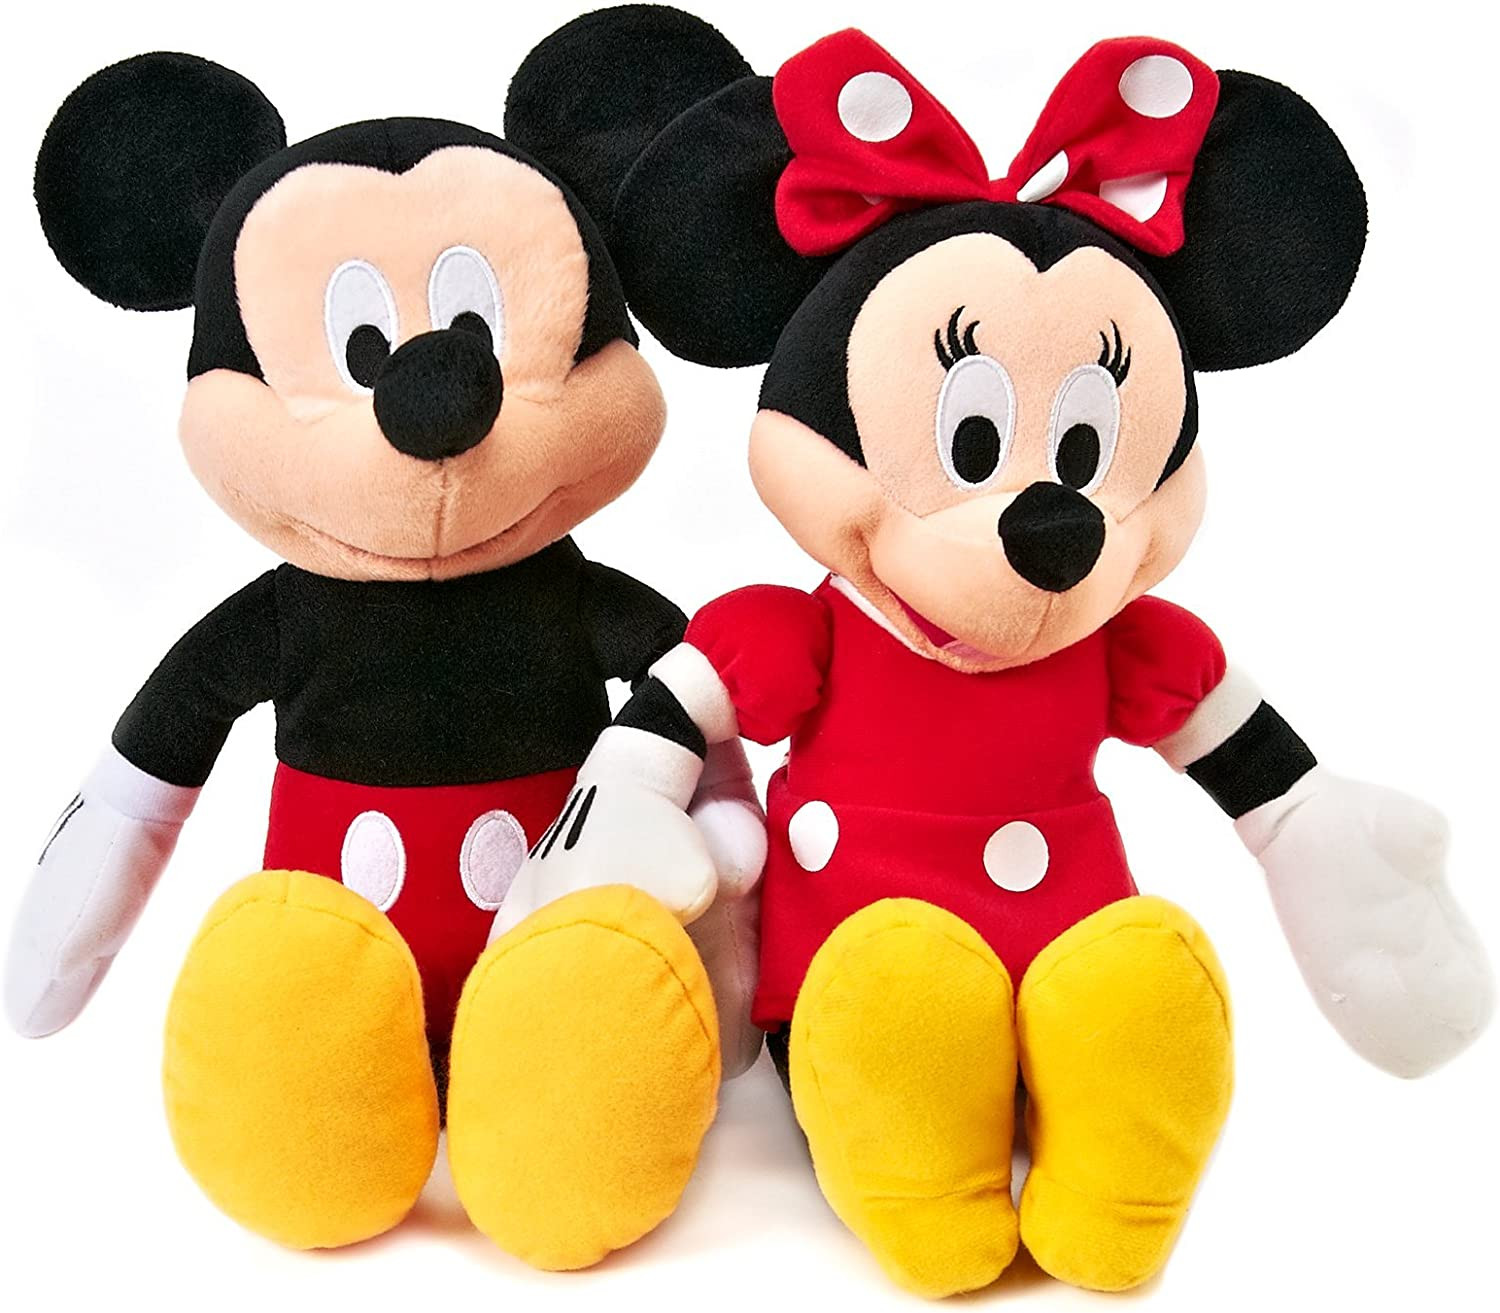 Disney Mickey and Minnie Plush Dolls (15) by Disney: Amazon.es ...